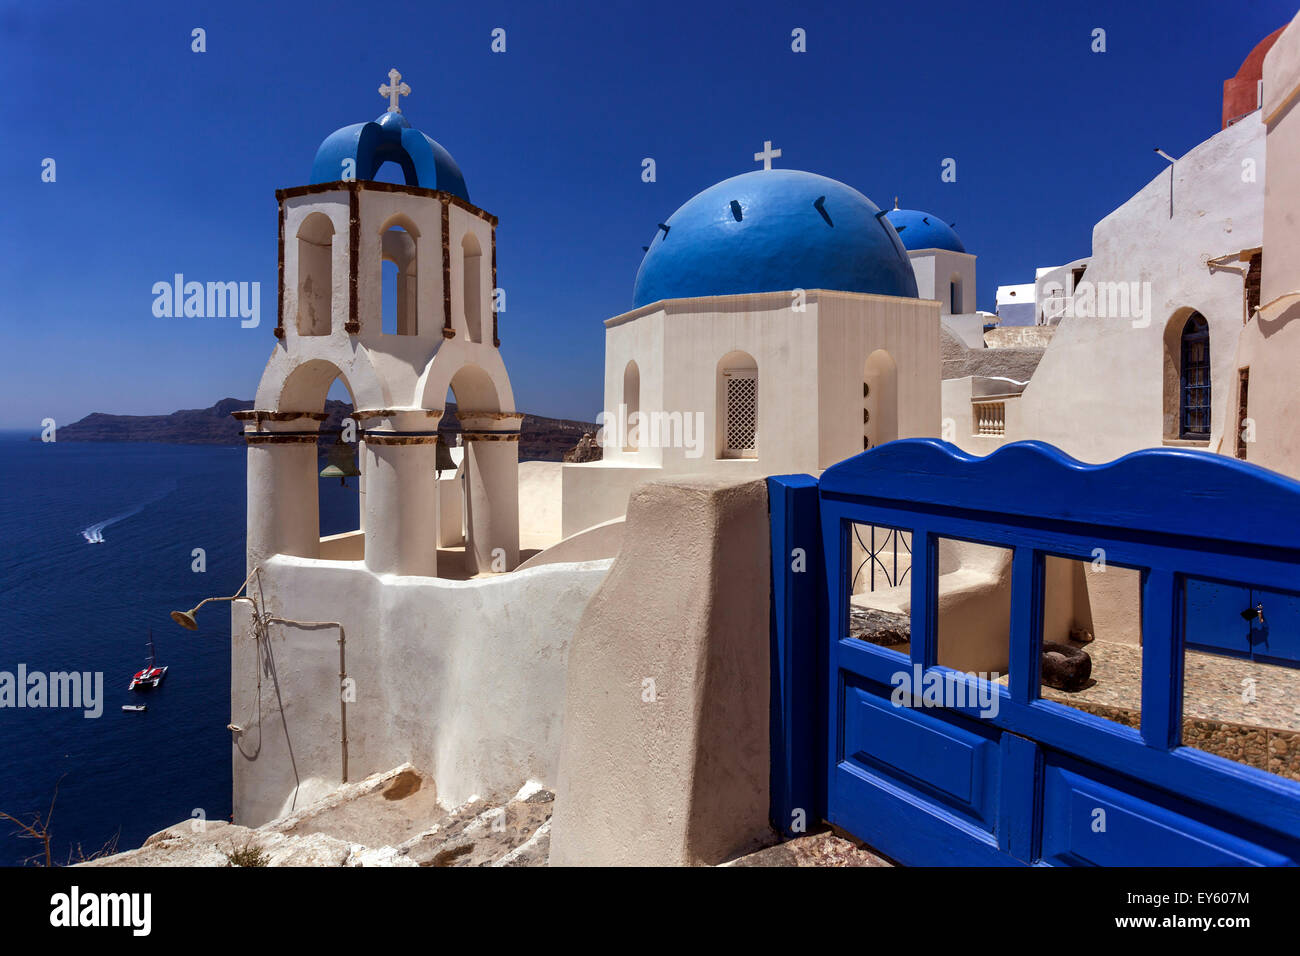 View to the blue domed churches in the Oia village by the cliff, Santorini, Cyclades Islands, Greek Islands, Greece, Stock Photo